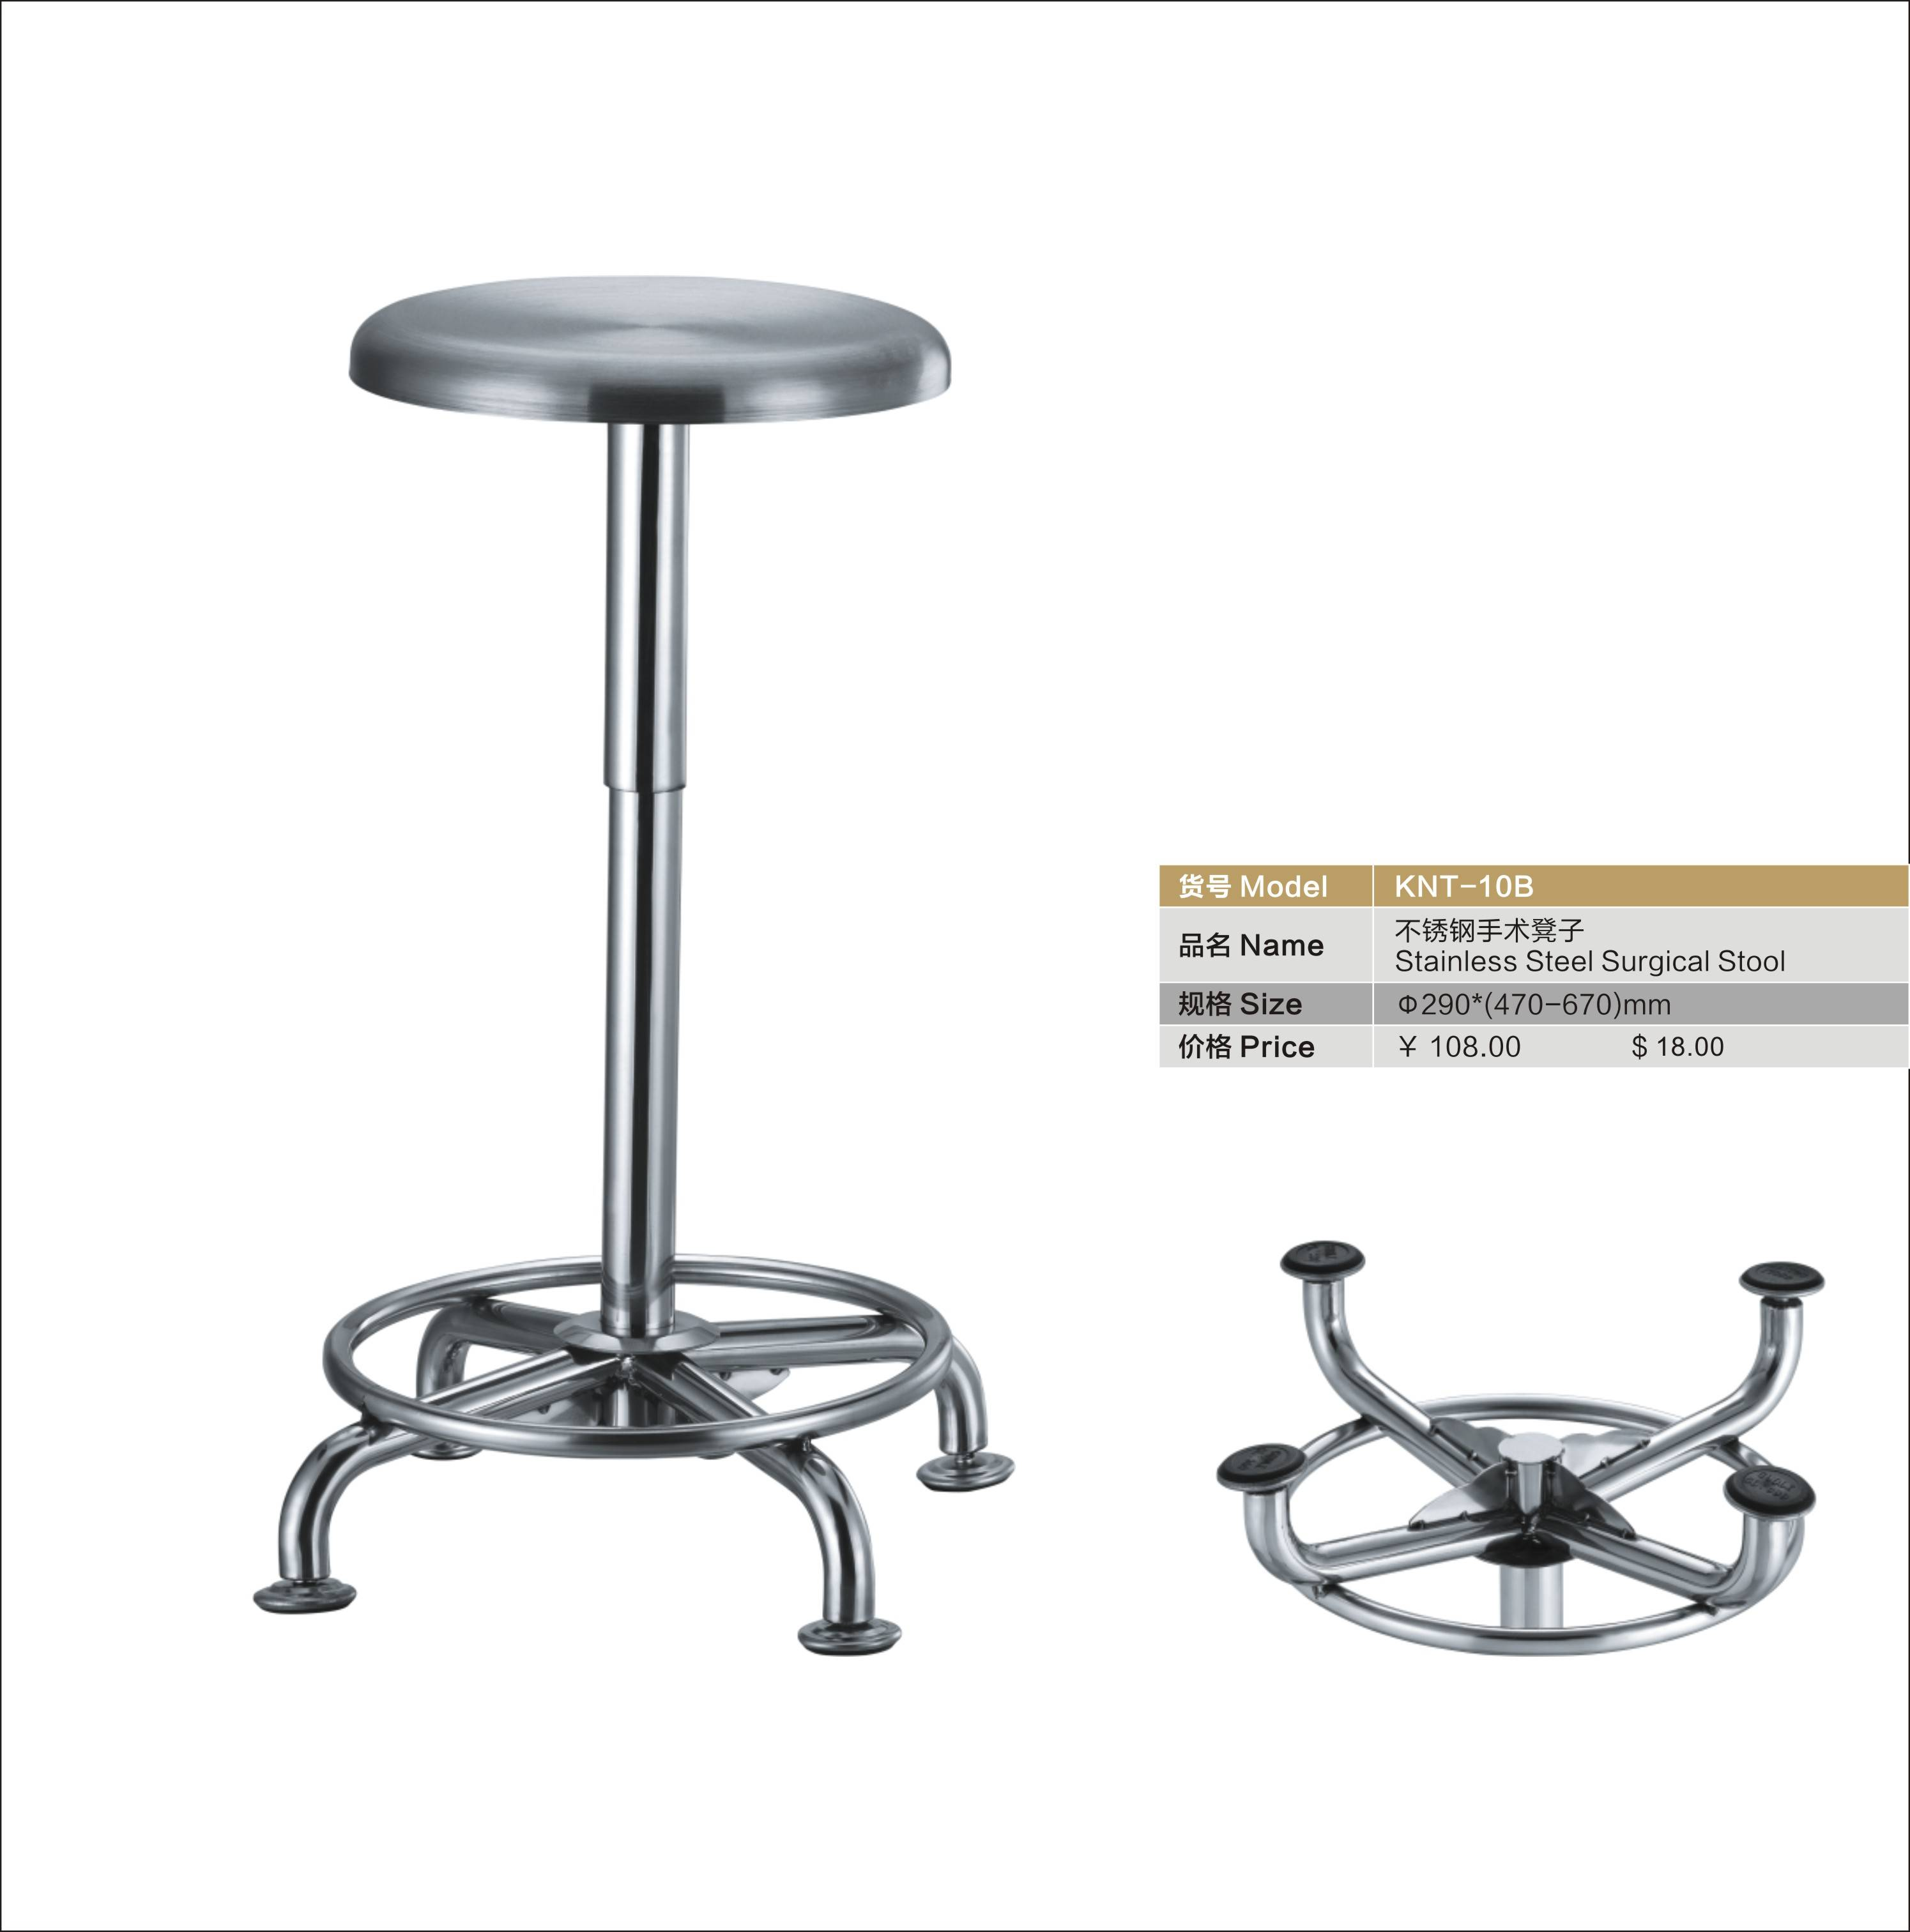 Stainless Steel Surgical Stool